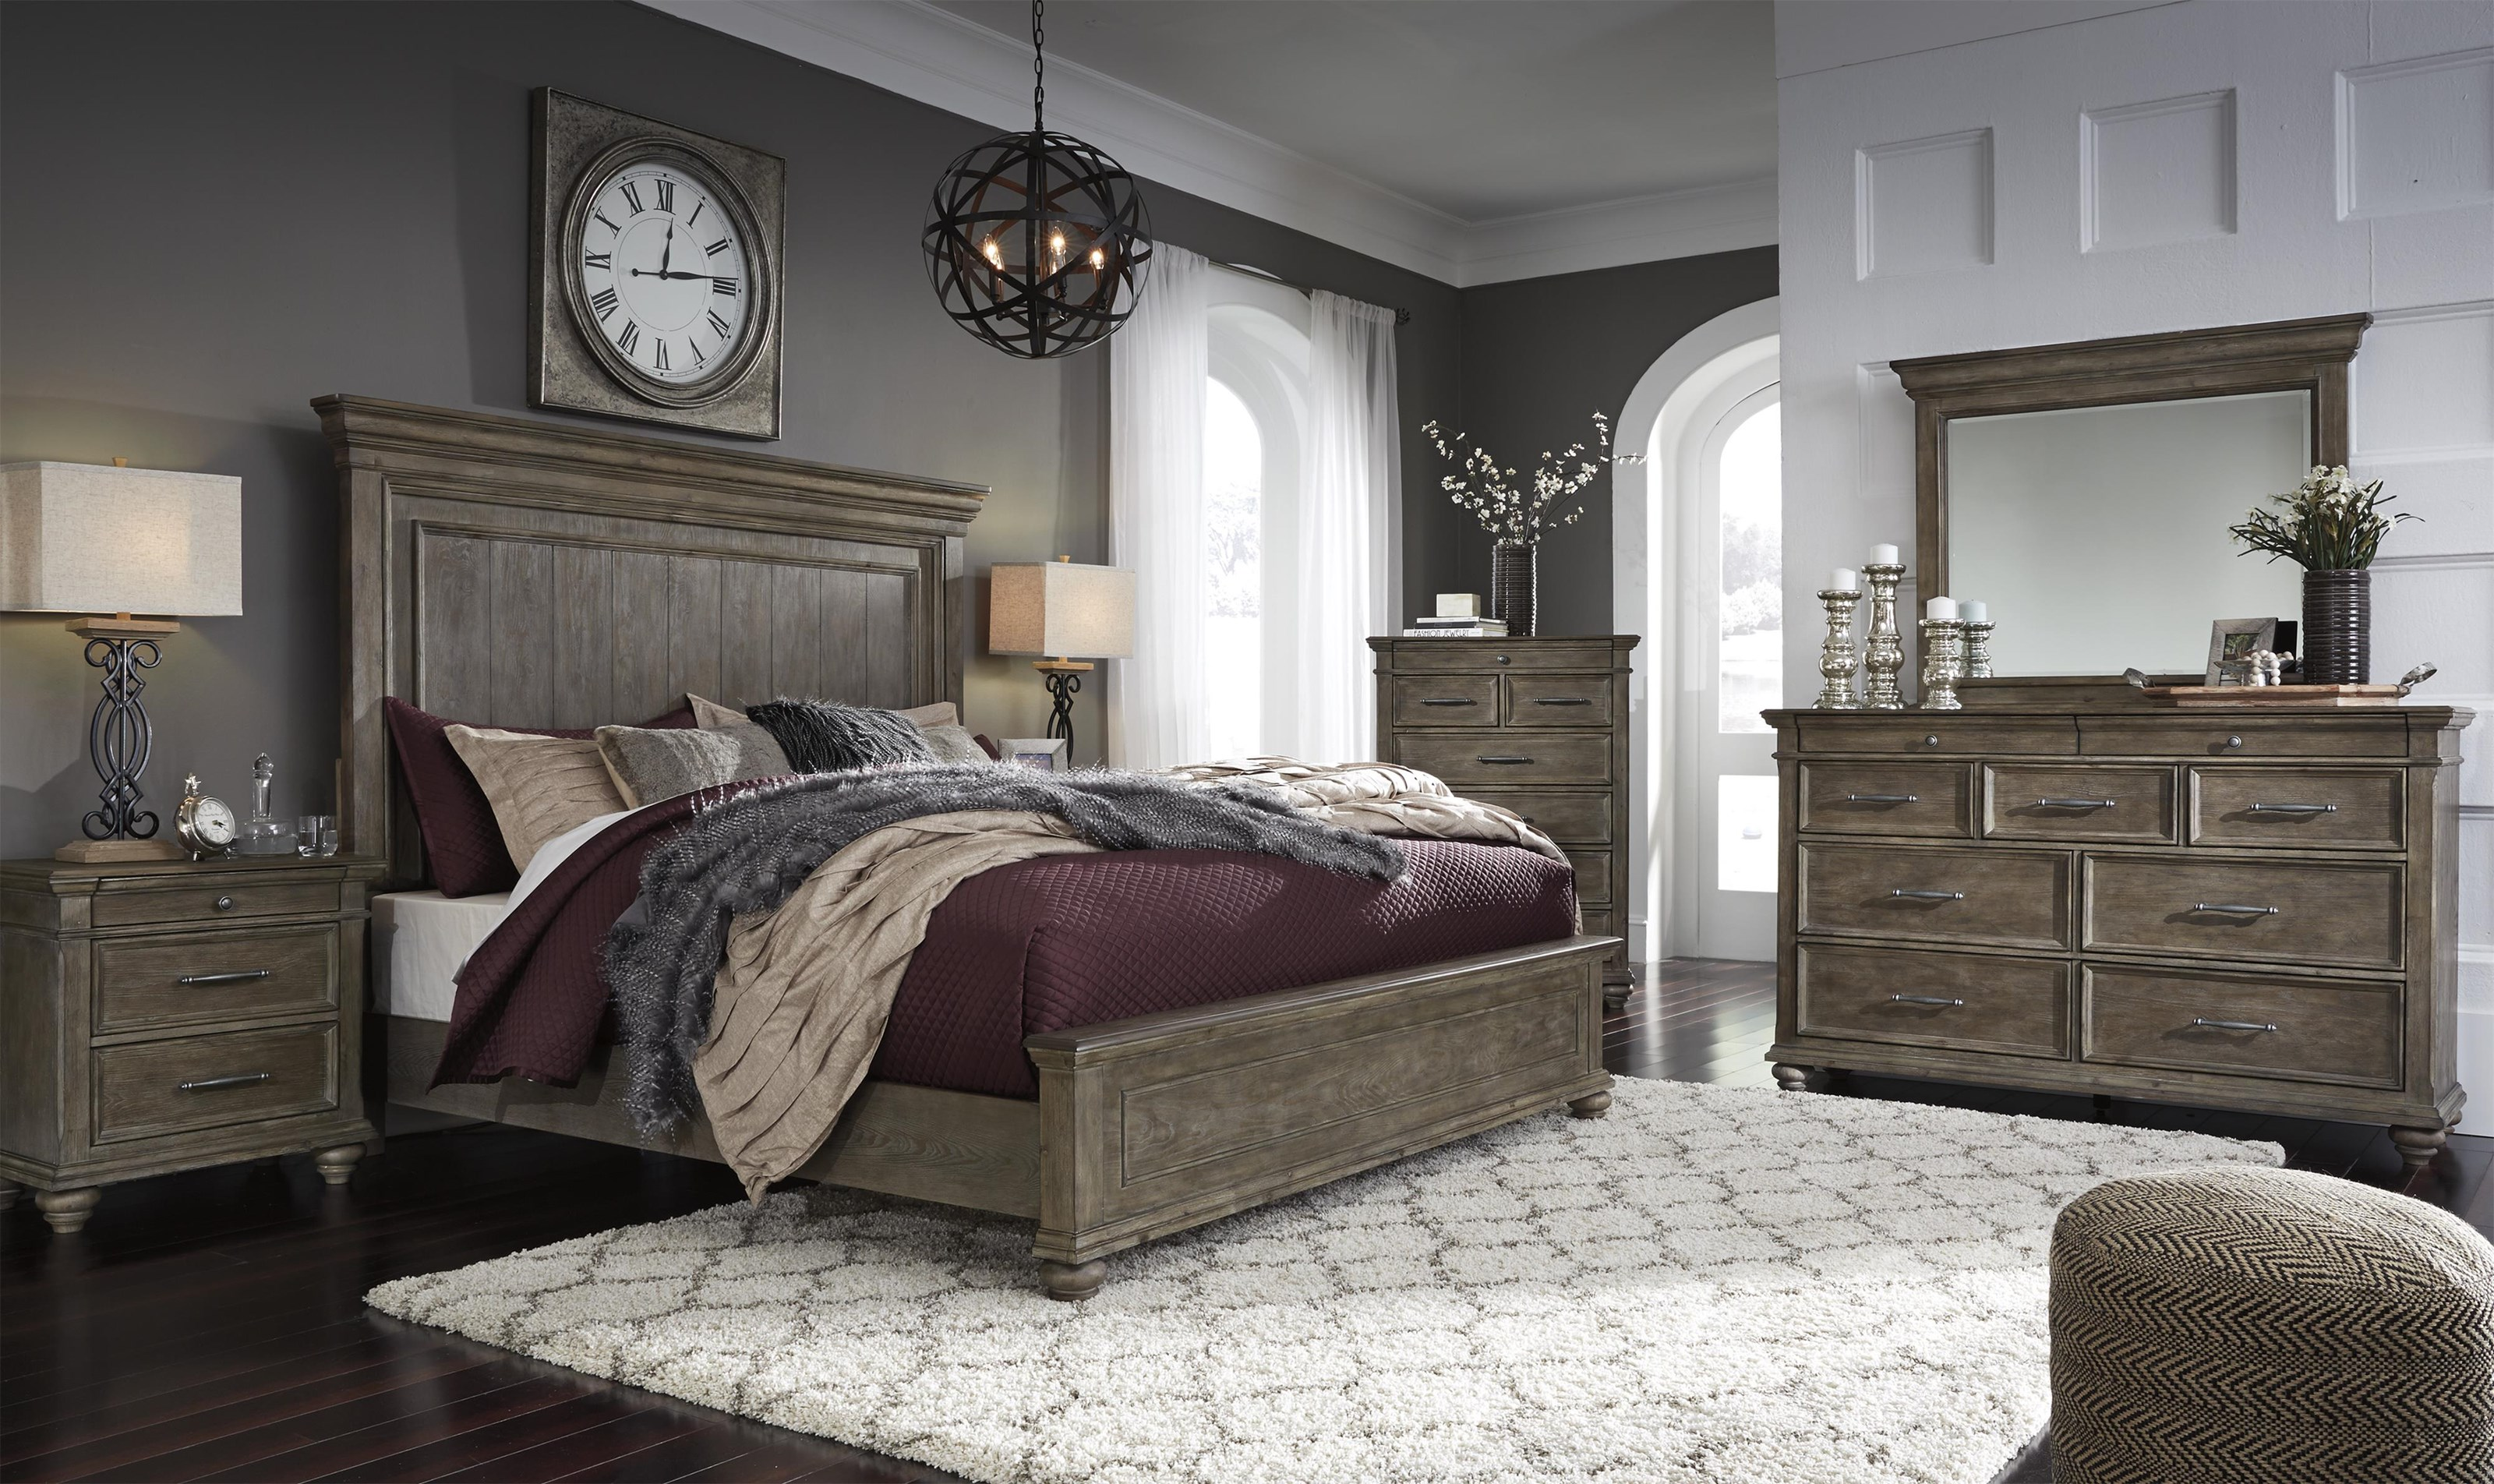 Johnelle Queen Panel Bed Package by Millennium at Sam Levitz Outlet